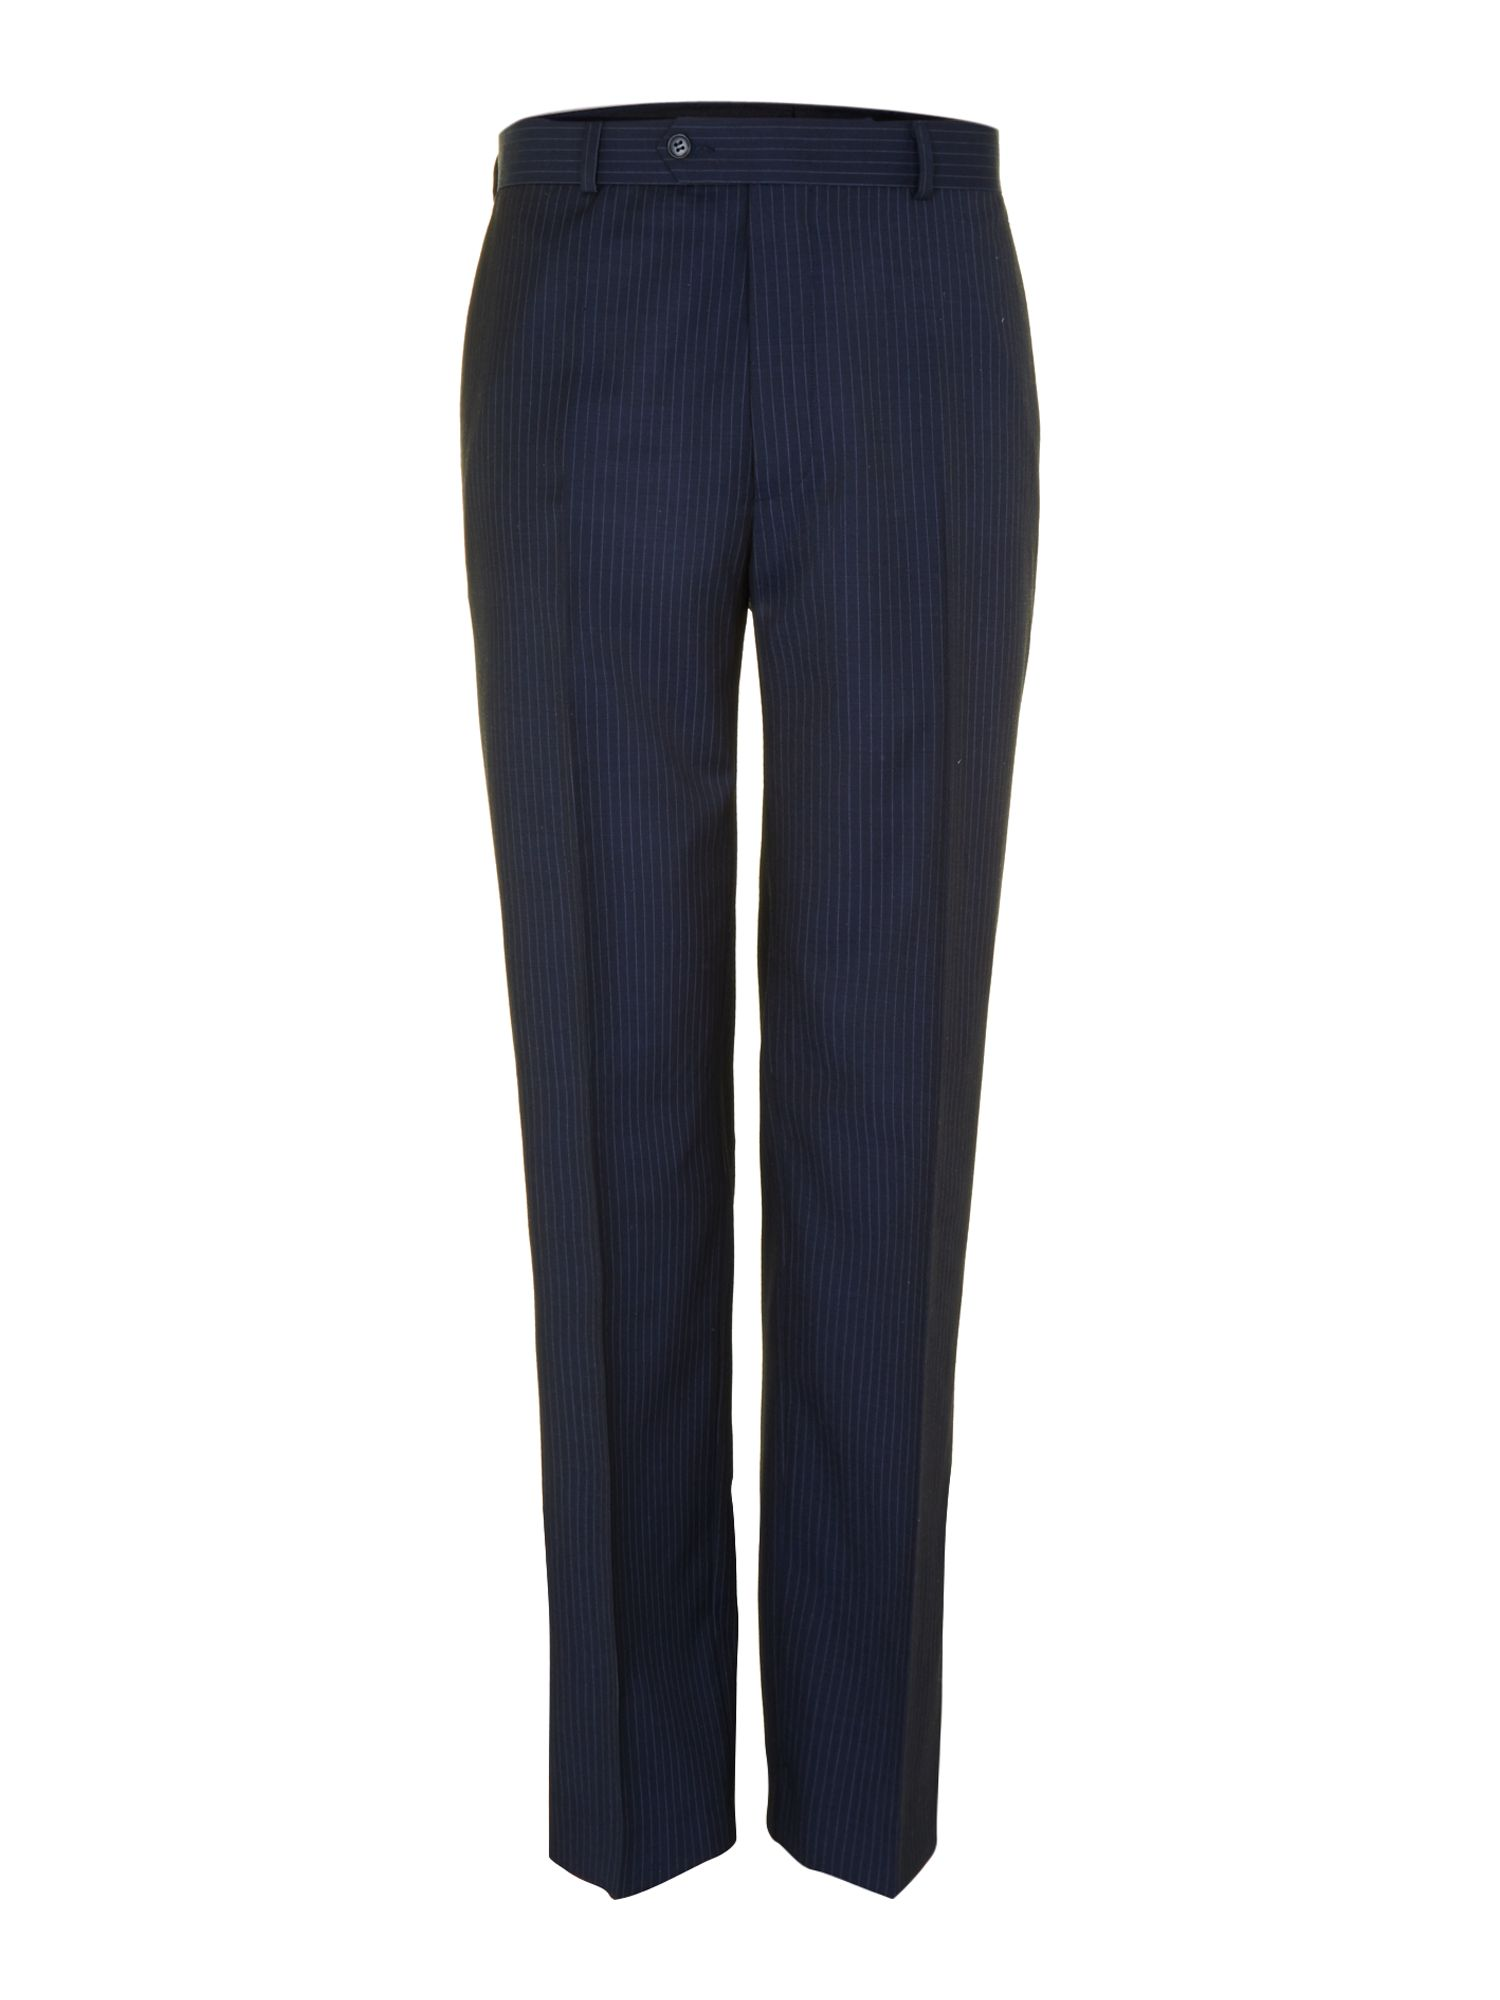 Navy stripe trousers